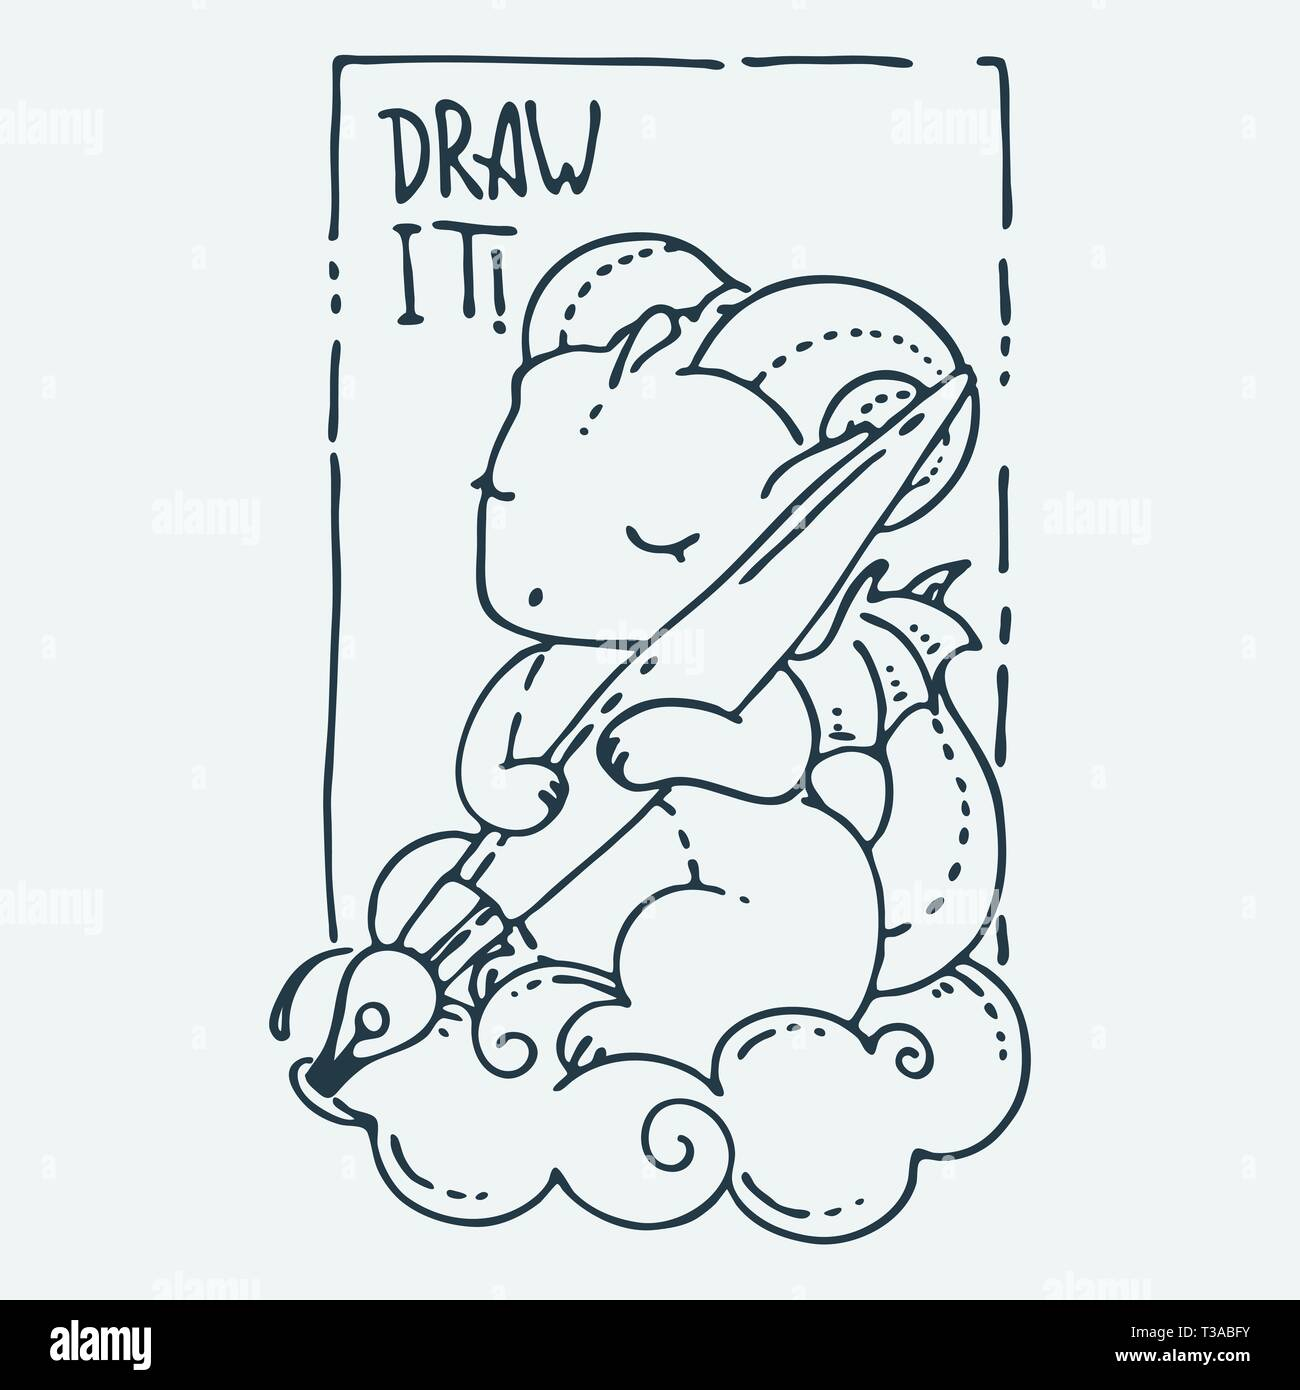 Disegnare Cartoon Carino Animale Vector Clip Art Illustrazione Per